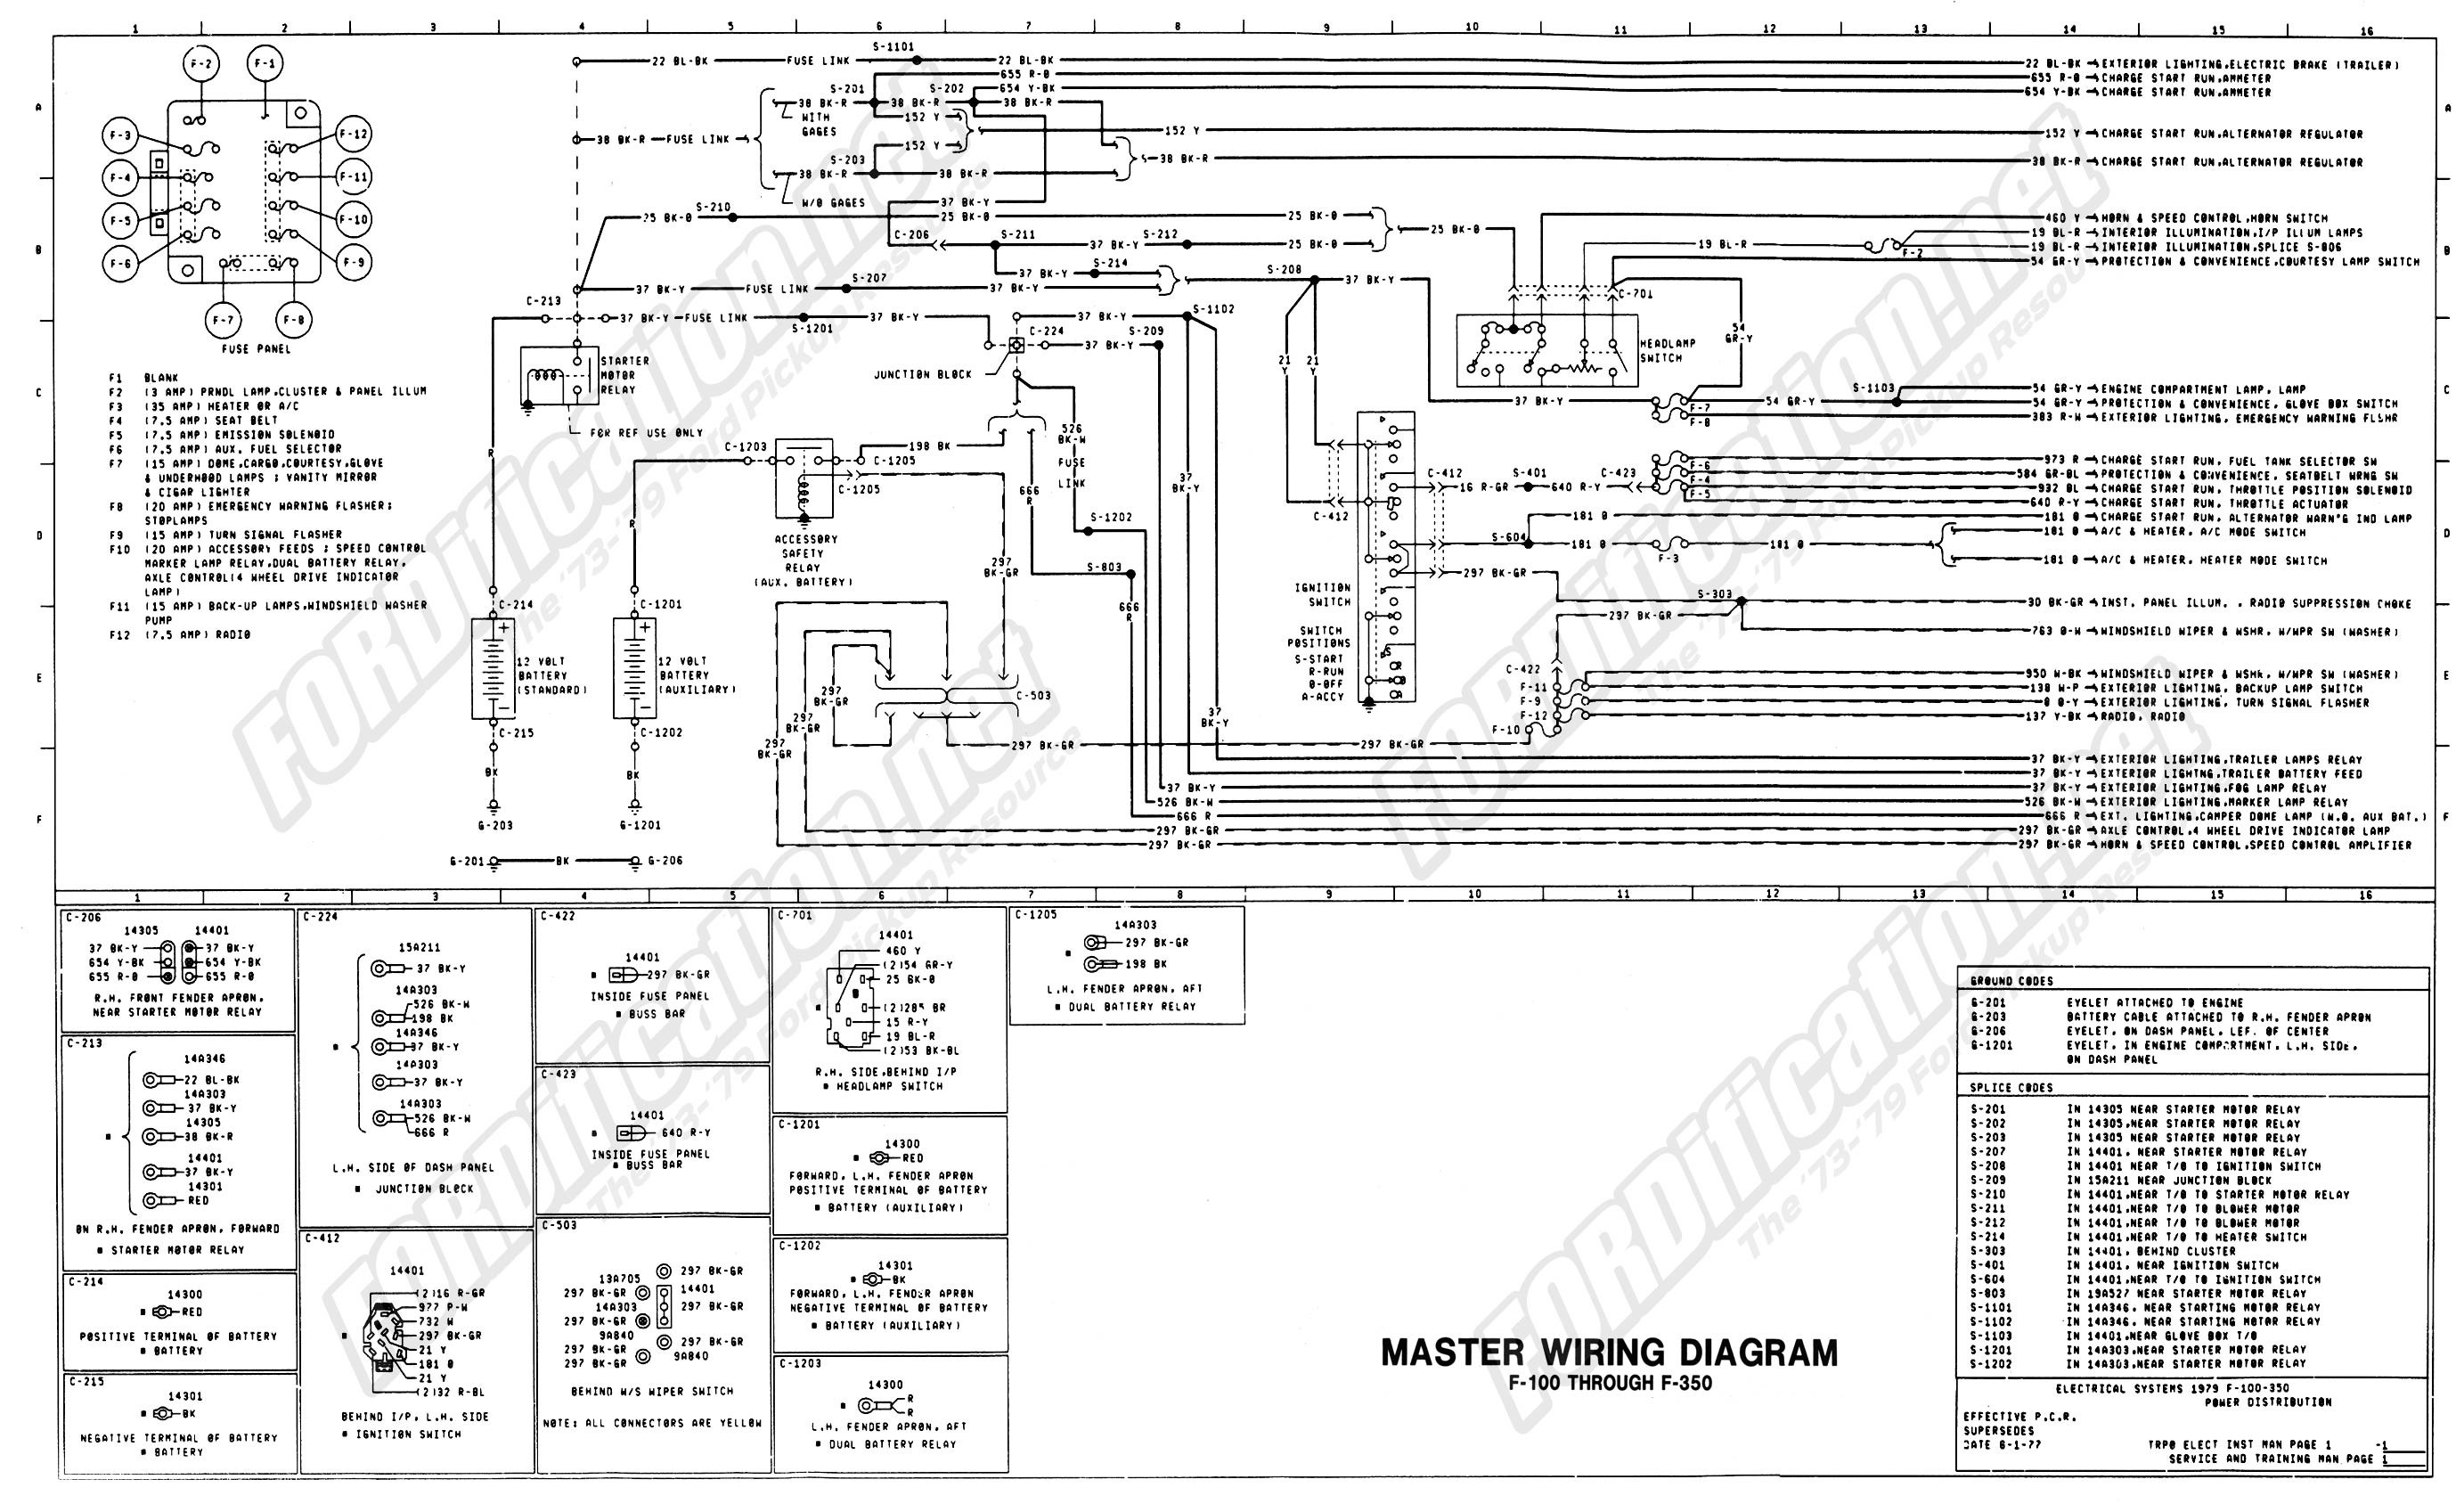 2009 sterling wiring diagram 10 3 matthiasmwolf de \u2022 Sterling Lt7501 Wiring Diagram sterling wiring diagram wiring diagram rh 53 kreditmedia de sterling acterra wiring diagram headlight truck lite model 40 wire diagram 01 chevy 2500